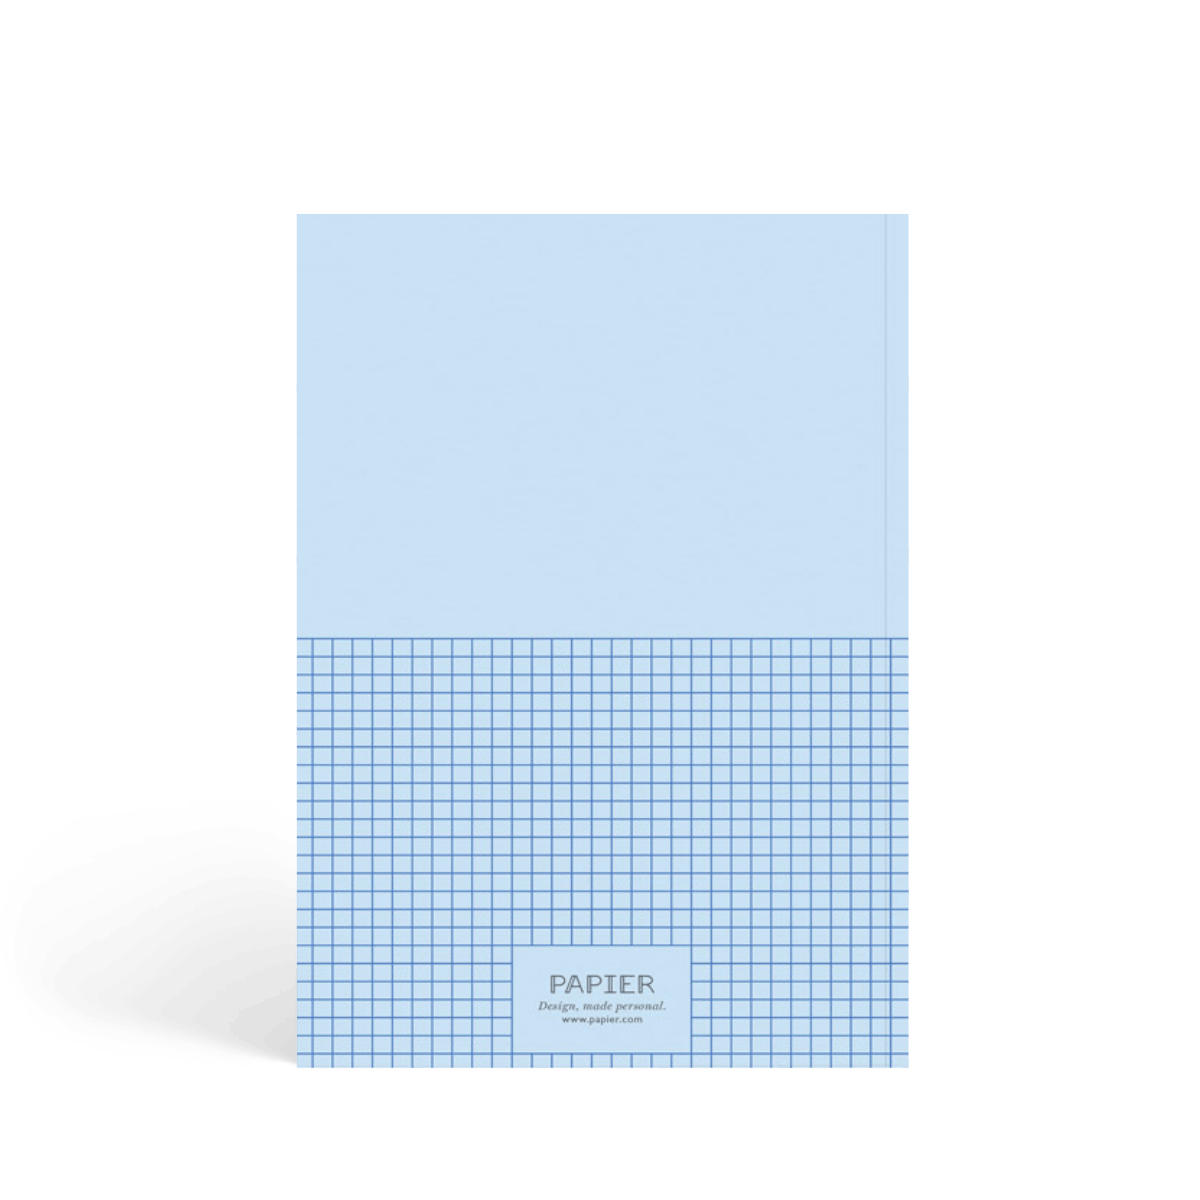 Https%3a%2f%2fwww.papier.com%2fproduct image%2f13906%2f5%2fblue grid 3569 arriere 1479403715.png?ixlib=rb 1.1